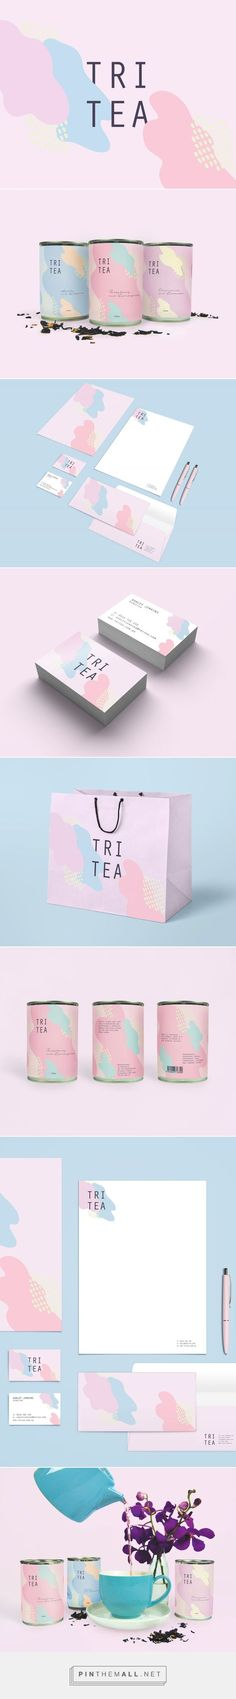 Tri Tea Branding and Packaging by Nasia Syrakis | Fivestar Branding Agency – Design and Branding Agency & Curated Inspiration Gallery